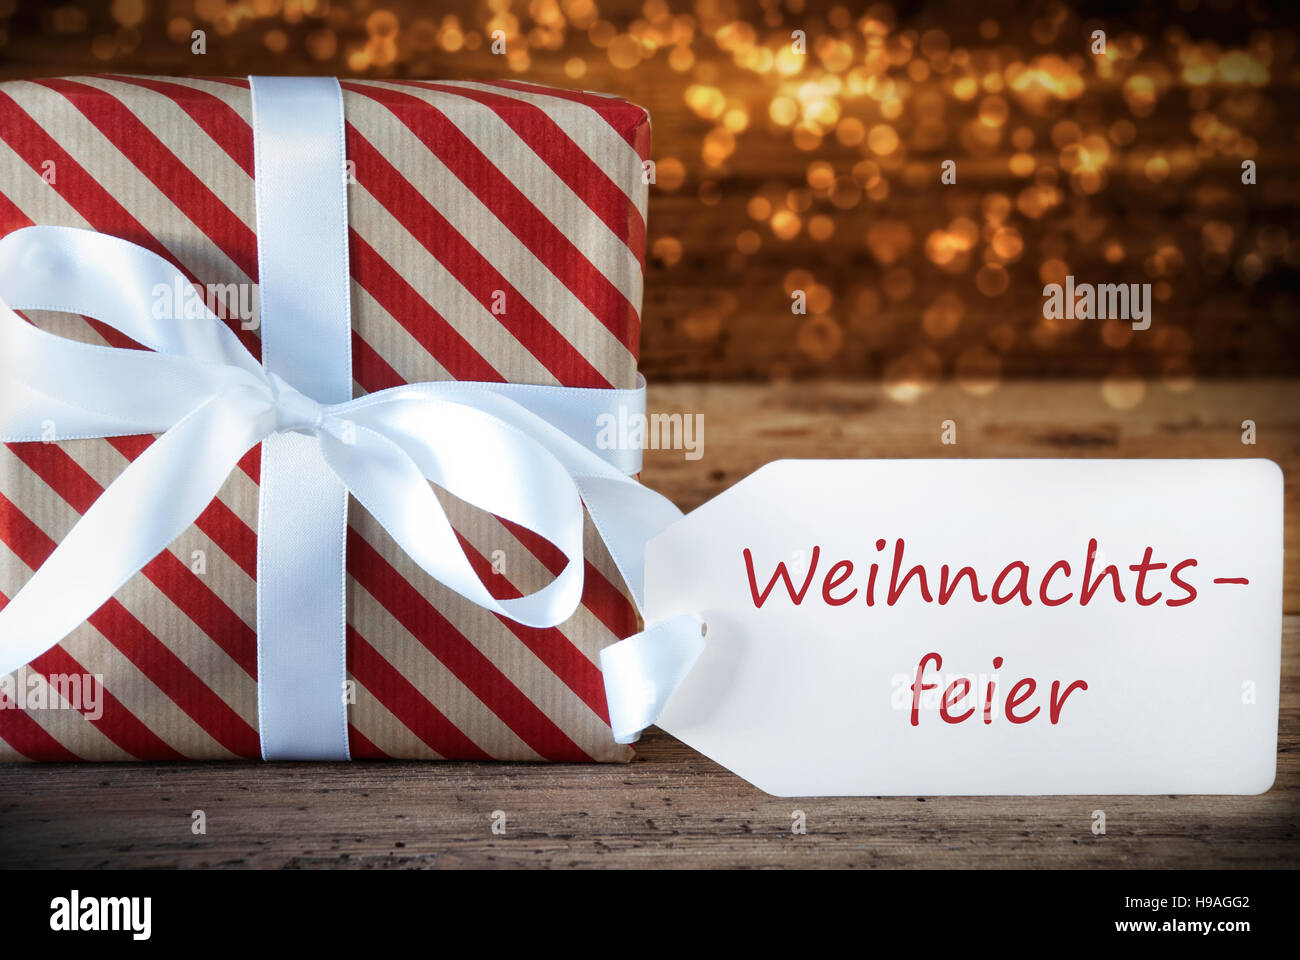 Atmospheric gift with label weihnachtsfeier means christmas party